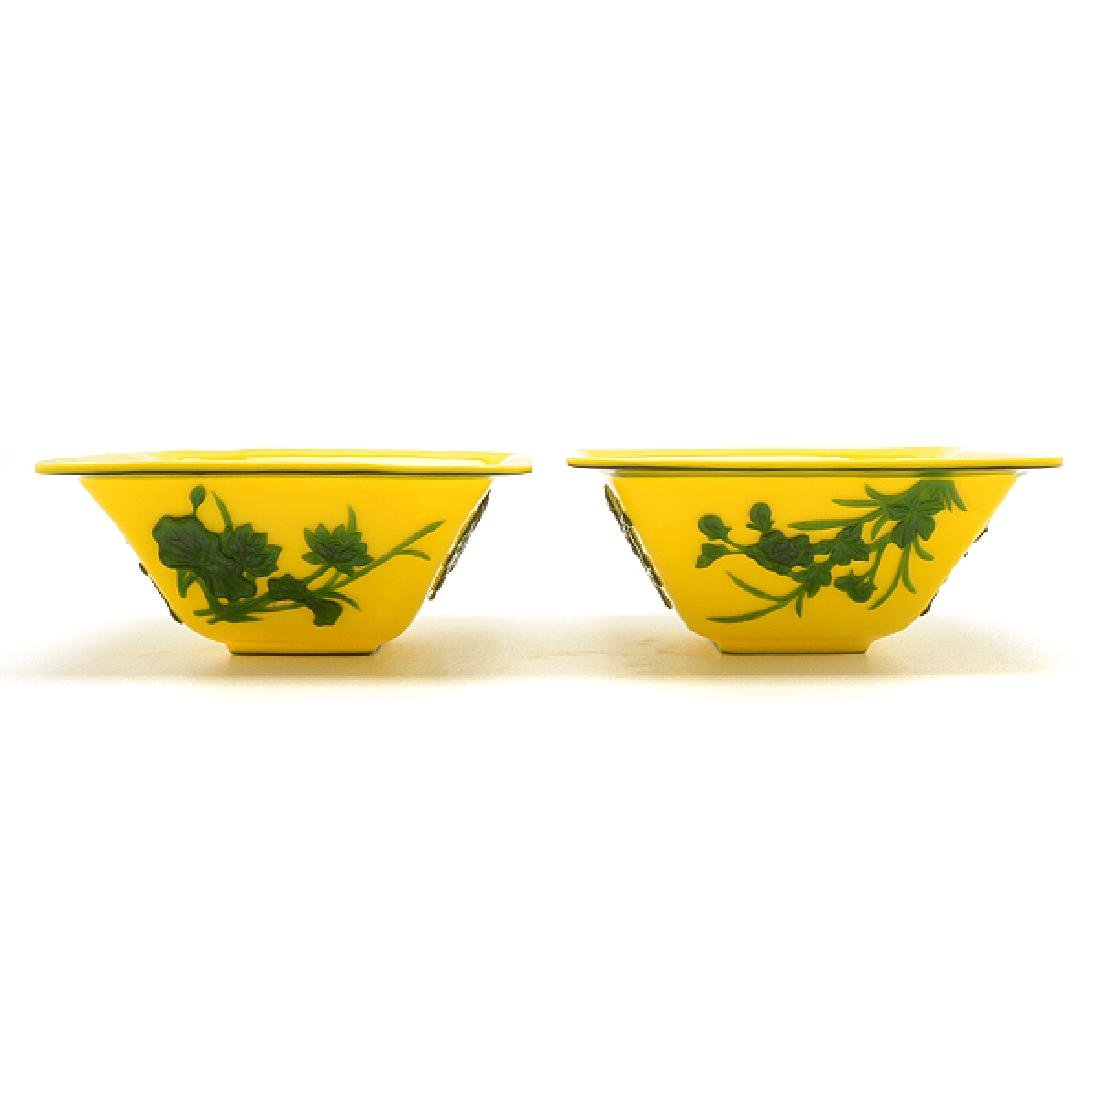 Two Pairs of Overlay Glass Bowls - 10